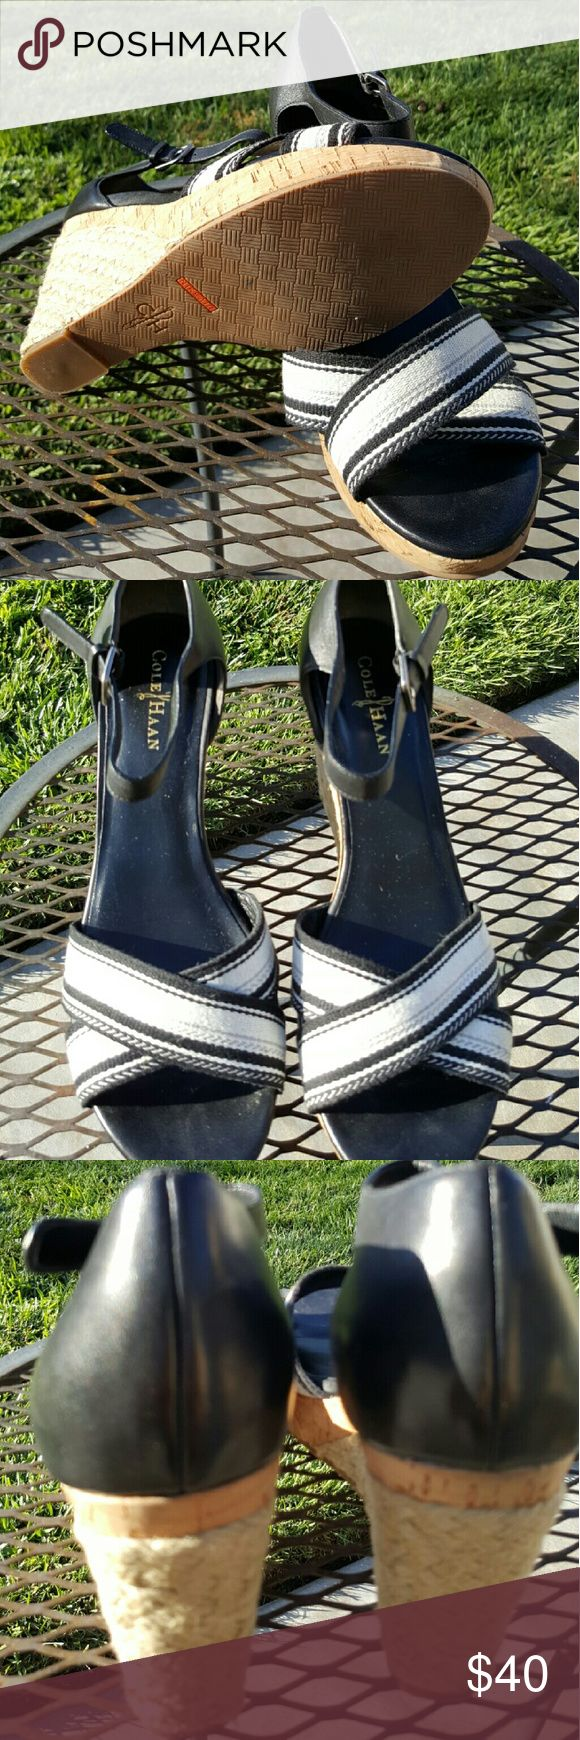 🌞END OF SUMMER SALE🌞Cole Haan Wedge Sandals Med height wedges. Excellent condition. Bought on Poshmark but doesn't fit my previously broken ankle Cole Haan Shoes Sandals